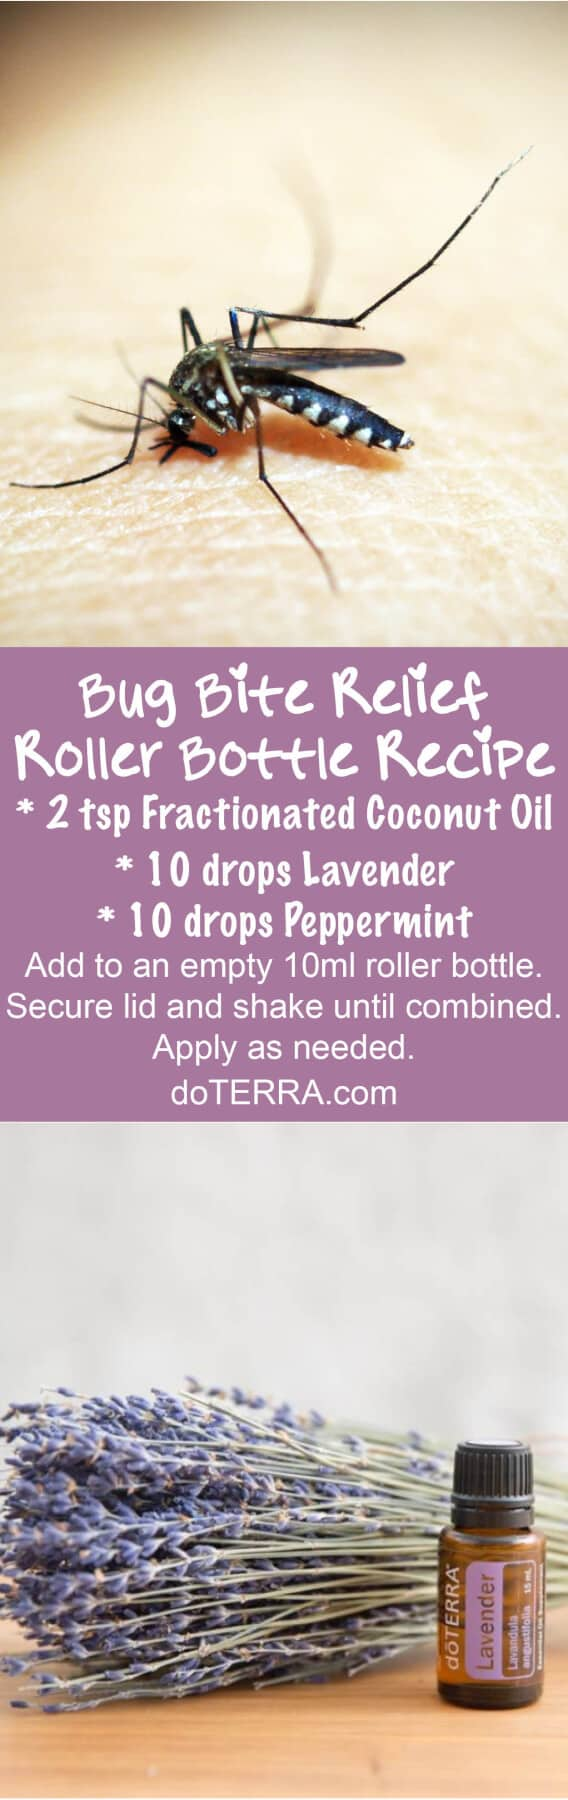 doTERRA Essential Oils for Bug Bites